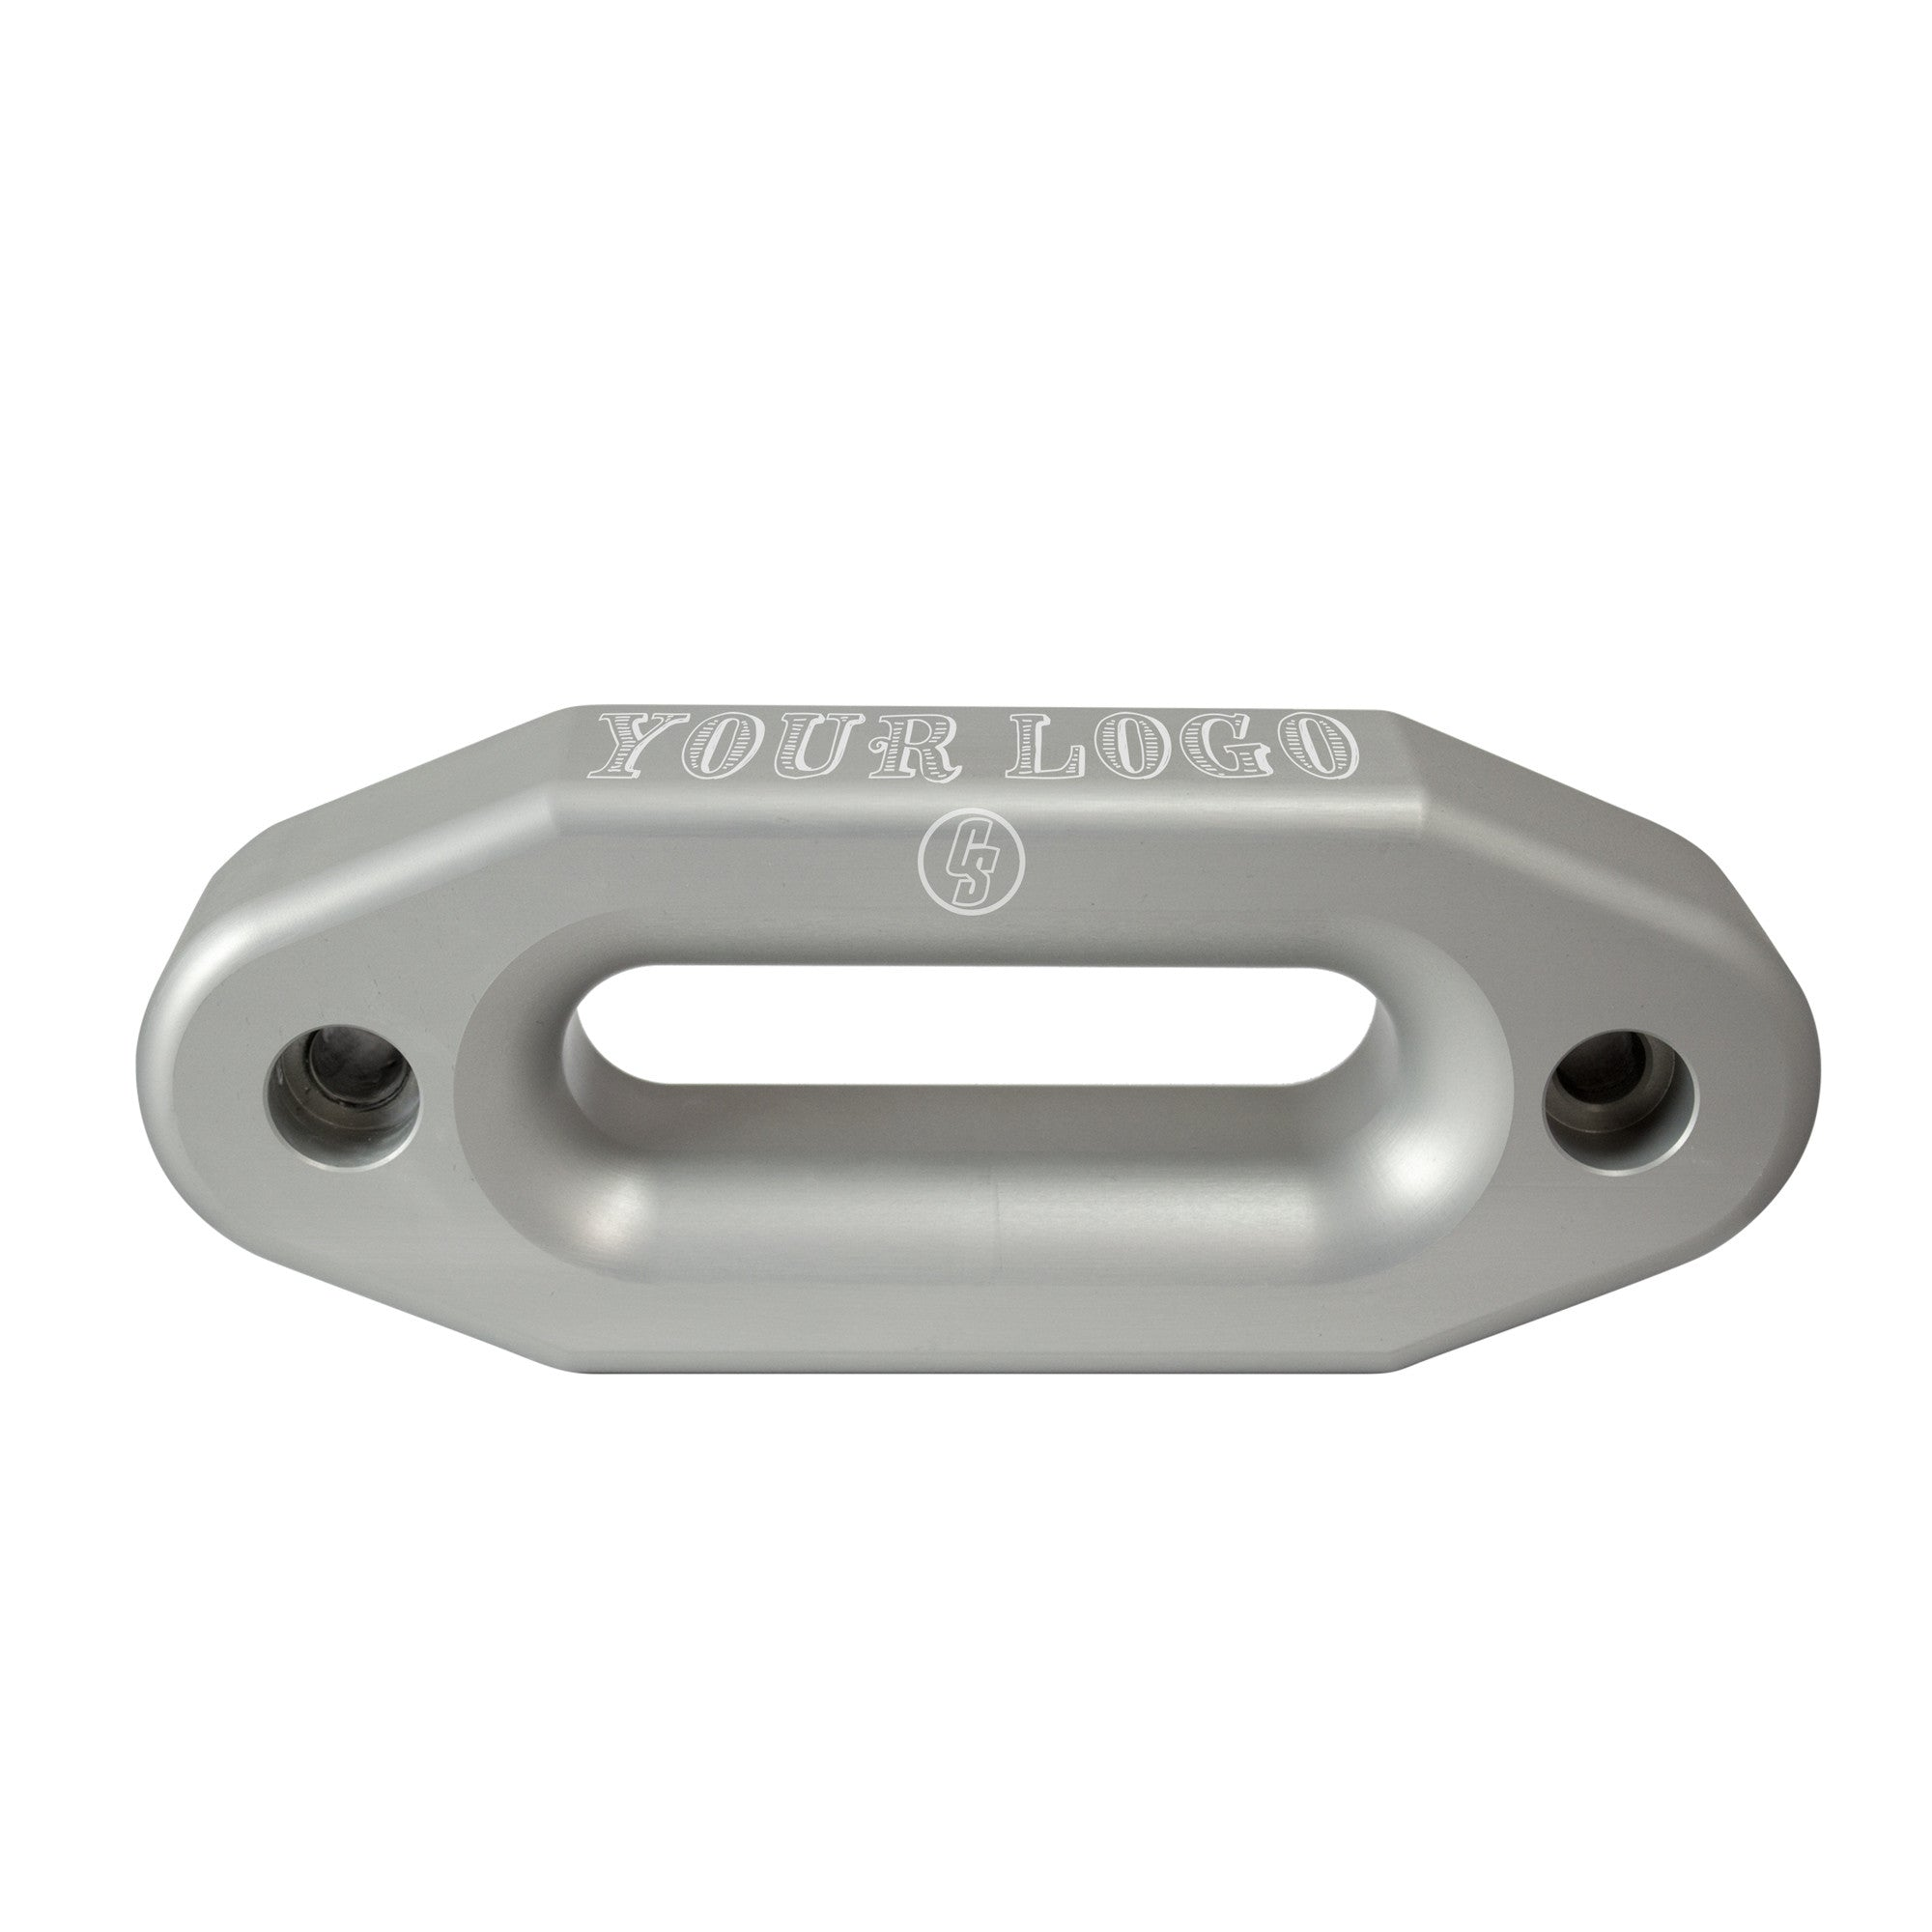 "Customized 6"" Rock Crawler Double Thick Fairlead"